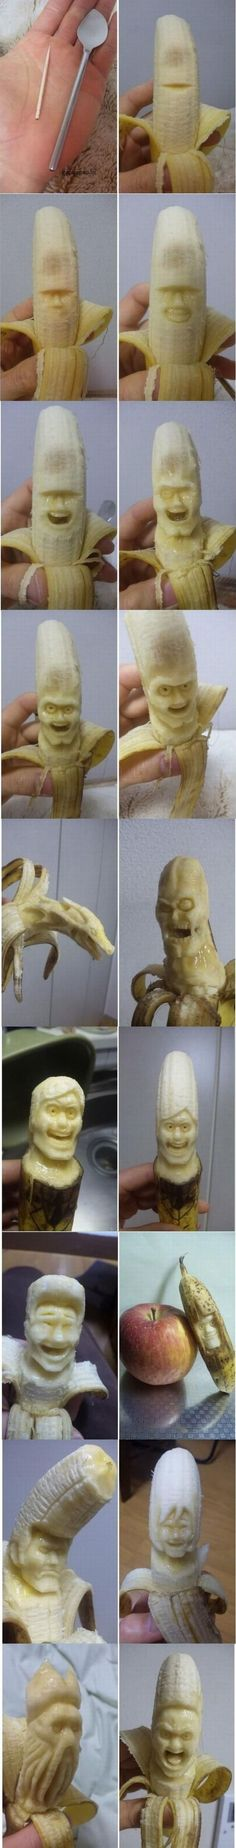 #Hilarious Pictures Of Banana